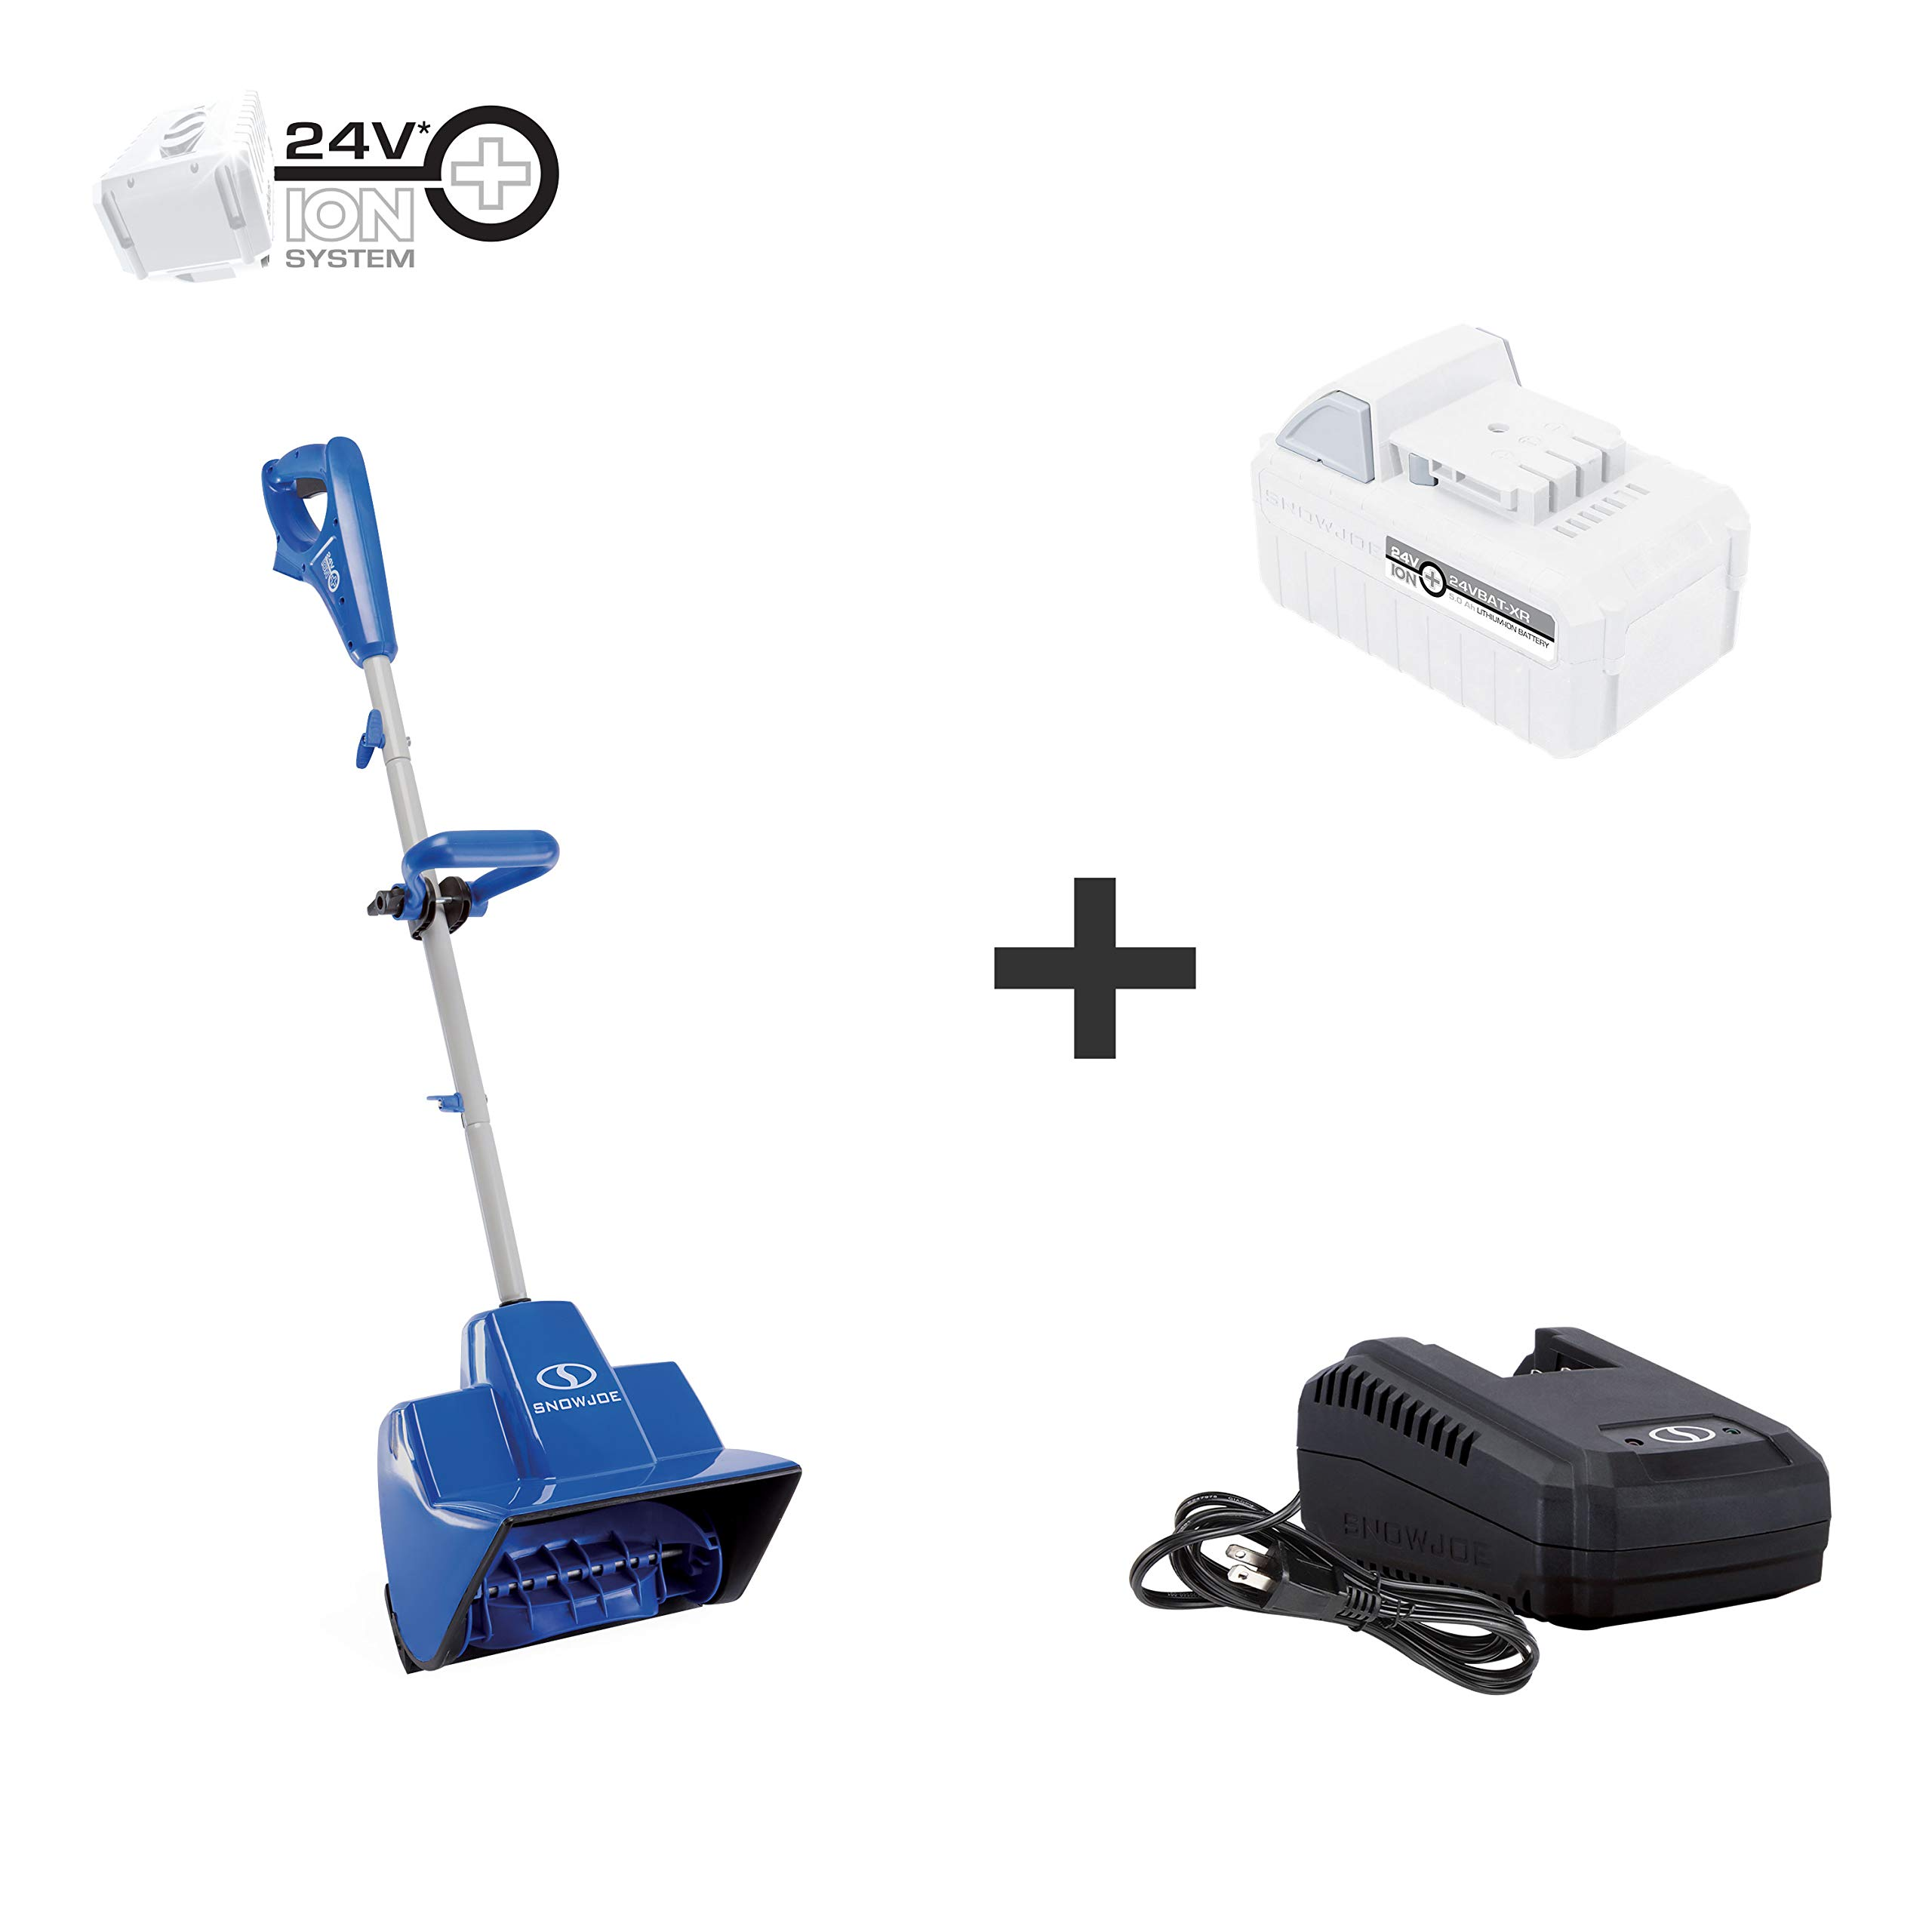 Snow Joe 24V-SS11-XR 24-Volt iON+ Cordless Snow Shovel Kit   11-Inch   W/ 5.0-Ah Battery and Charger